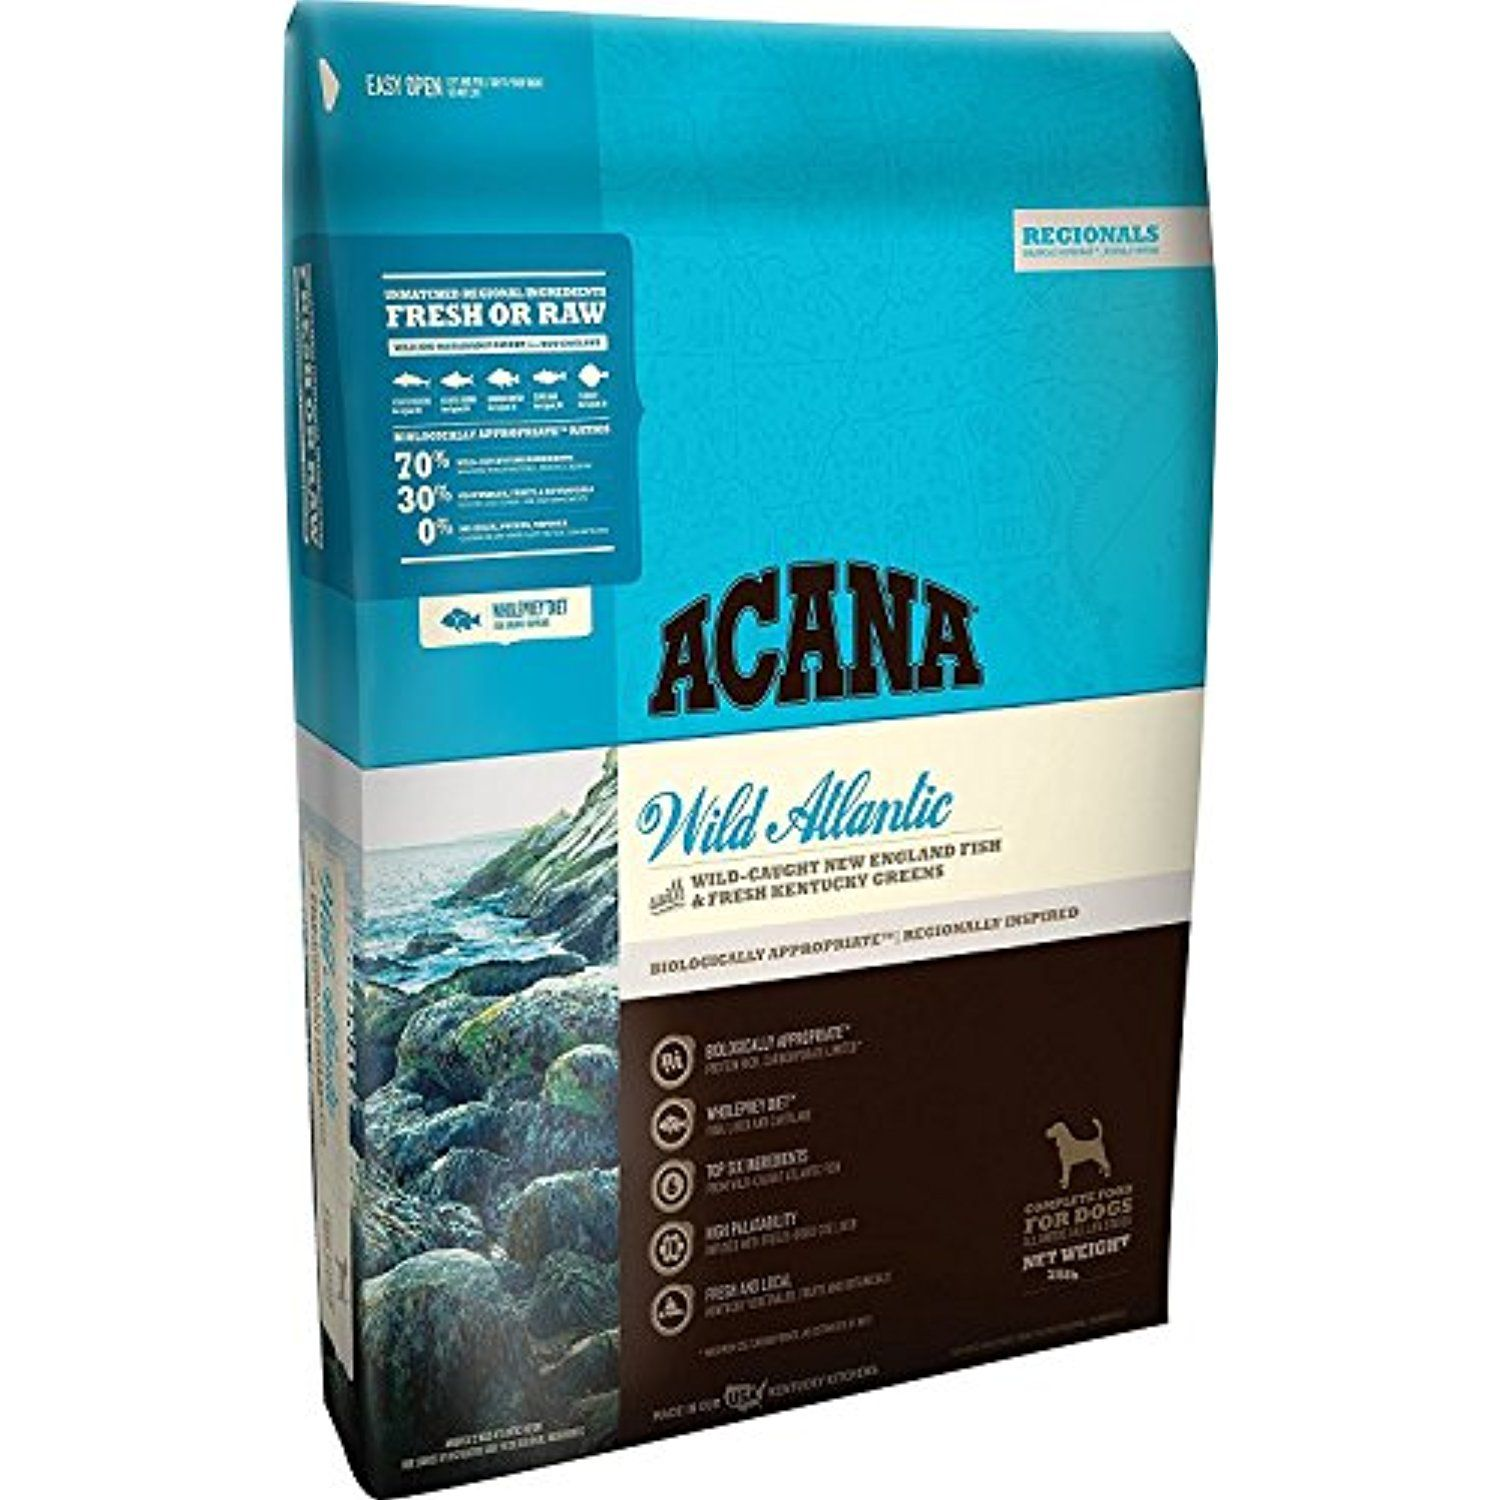 Orijen Acana Regionals Wild Atlantic Dry Dog Food, 25 lb